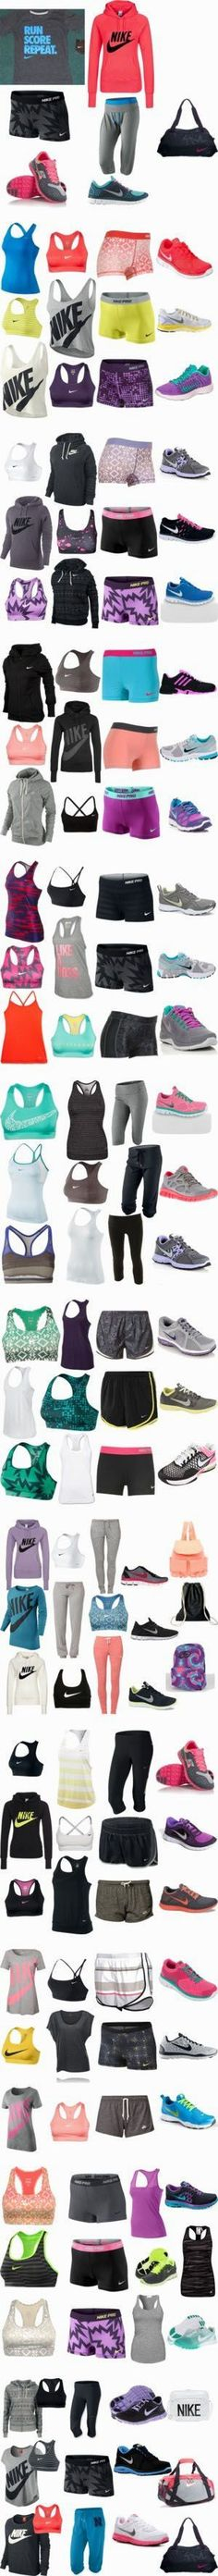 Sports Nike running shoes so beautiful and exquisite,click to come online shopping, Nike sign with bright lights in the city